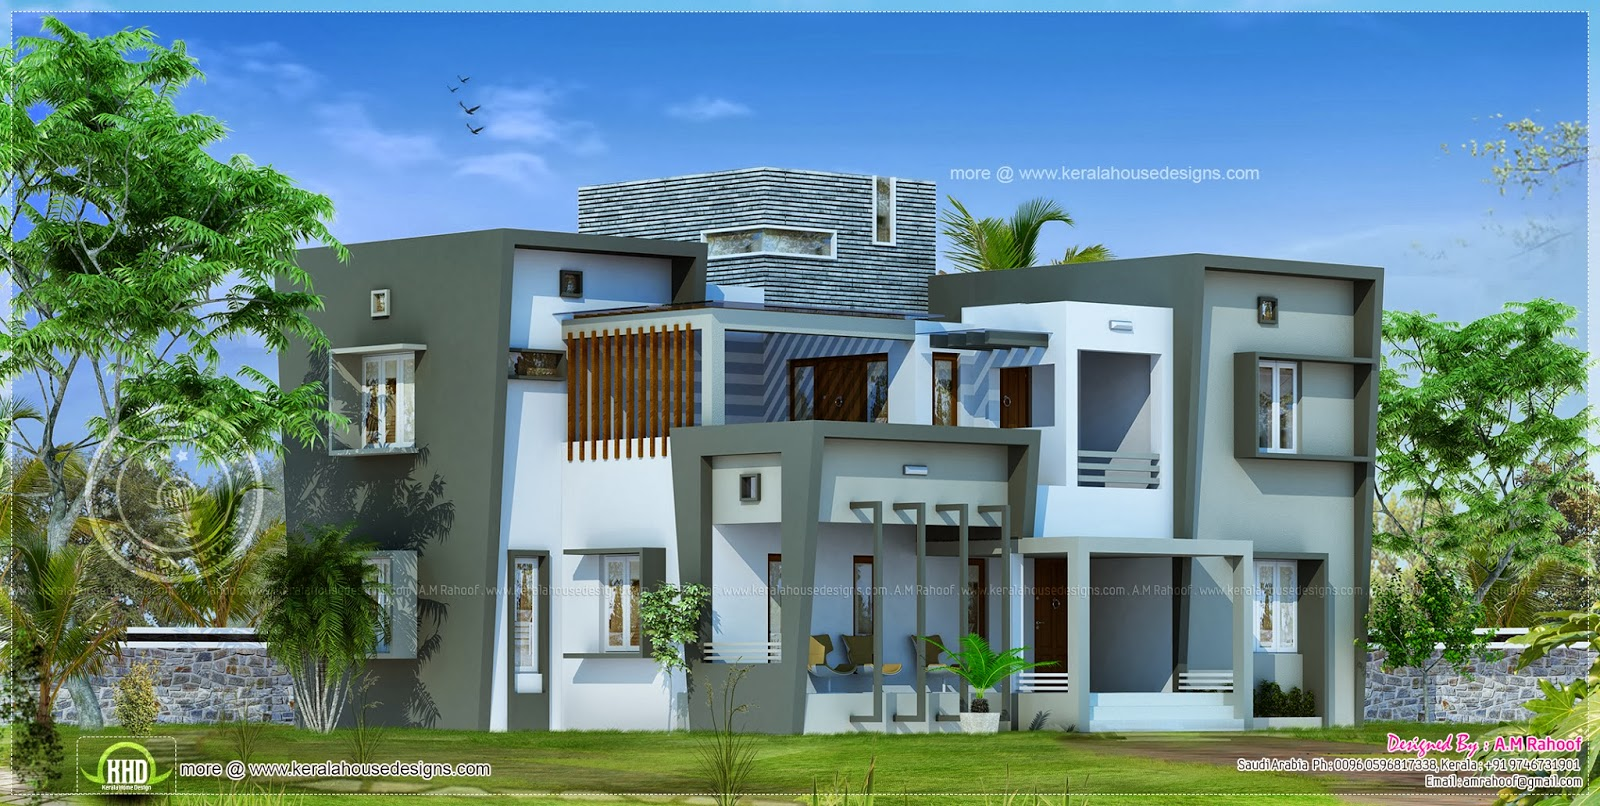 Modern house design in 2850 square feet home kerala plans for Kerala modern house designs